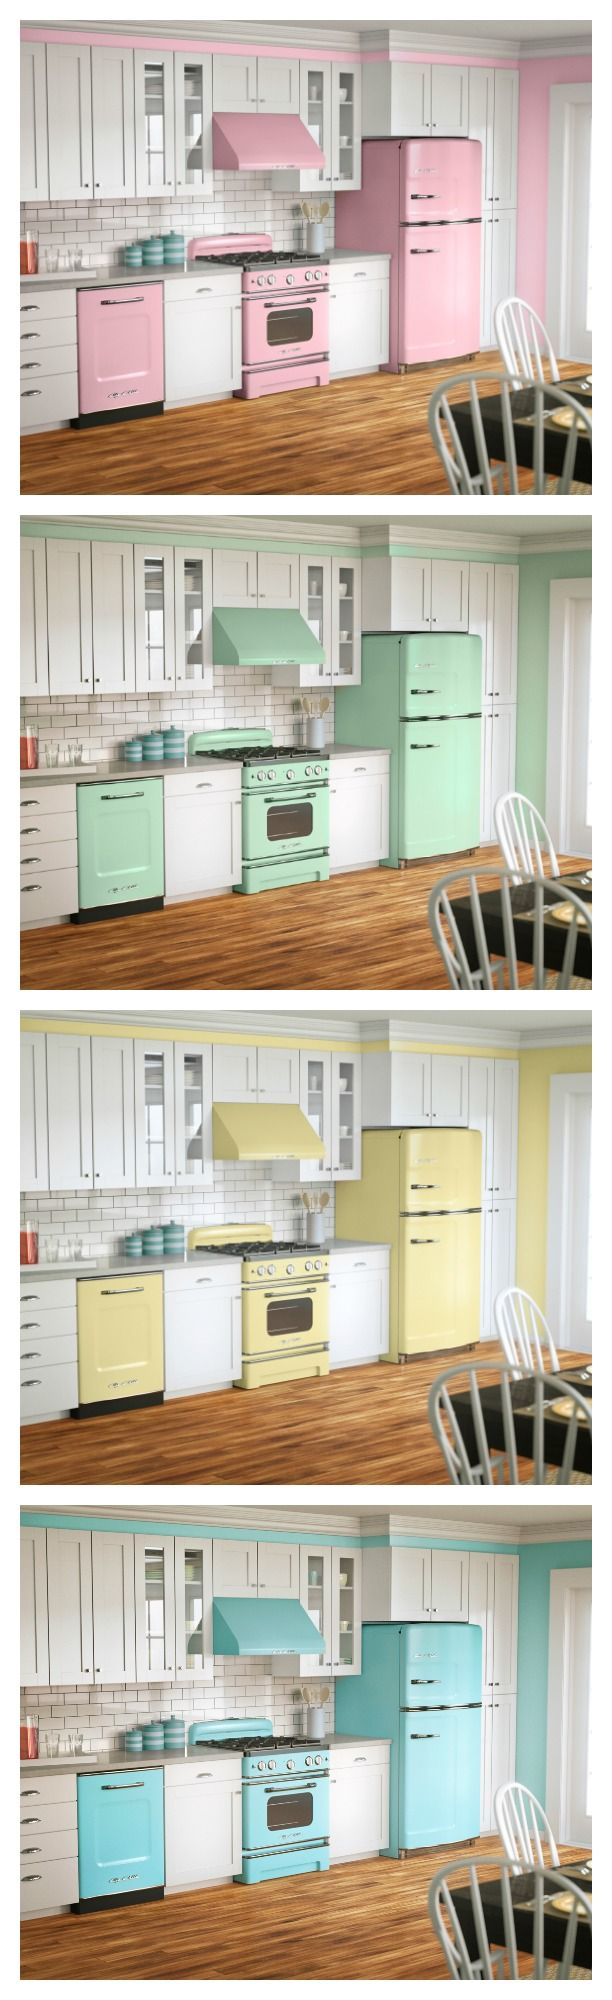 Best 25+ Vintage kitchen appliances ideas on Pinterest | DIY ...